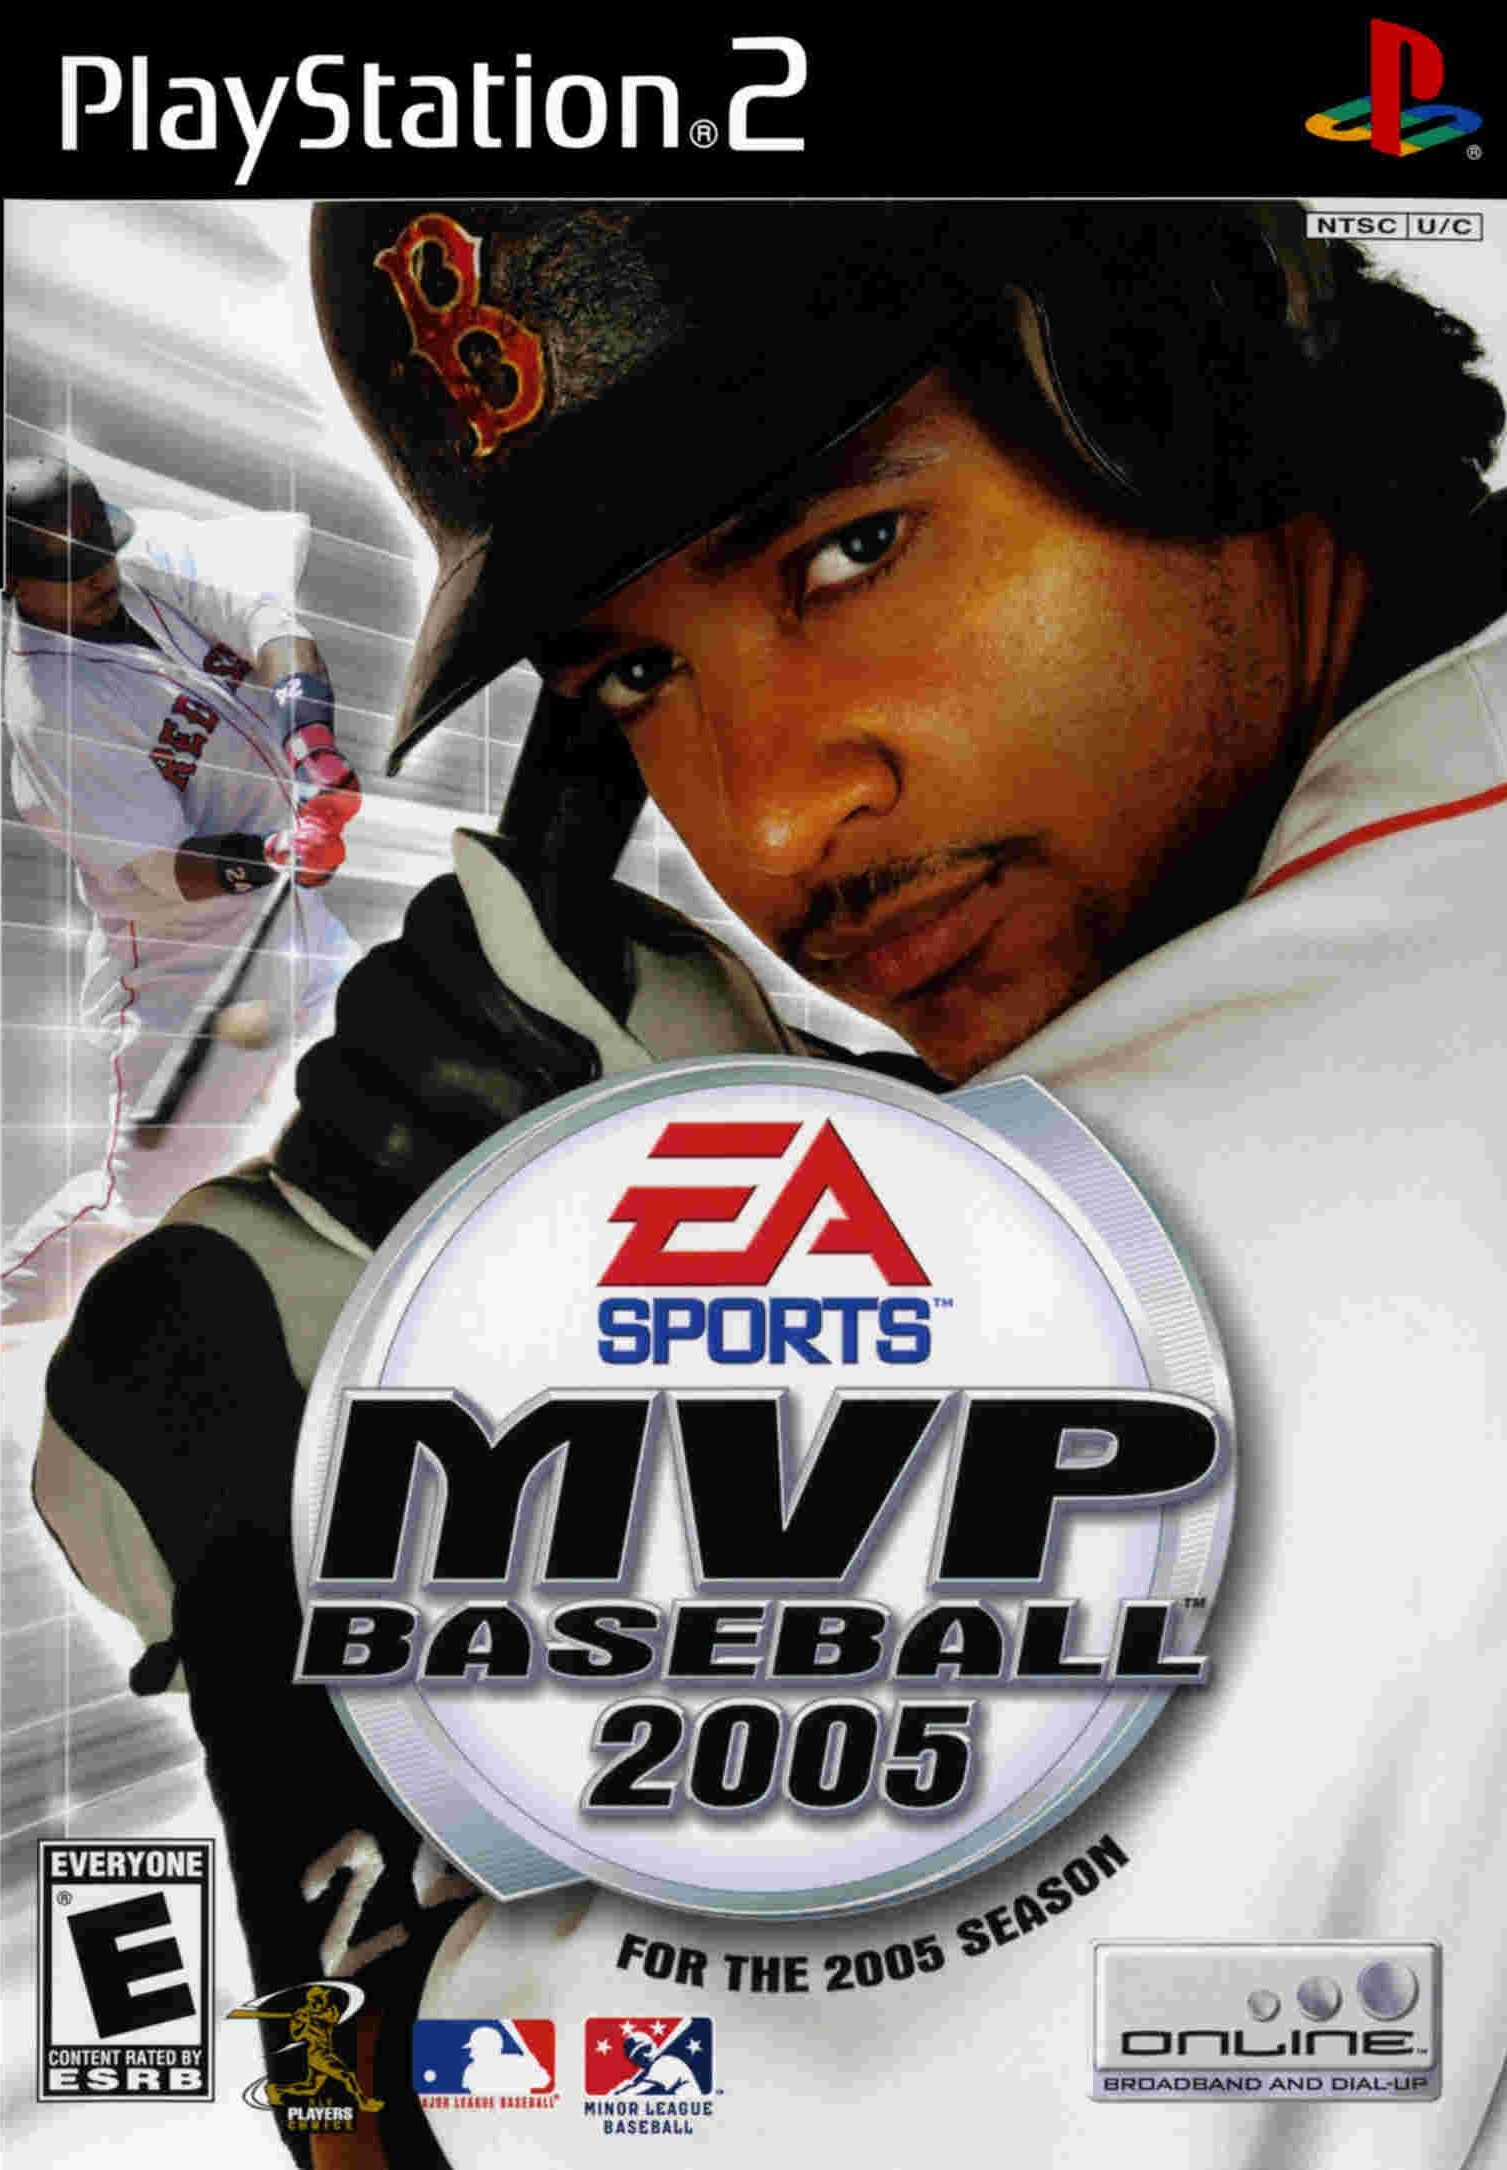 Pin by Aaron Viles on PlayStation Baseball games